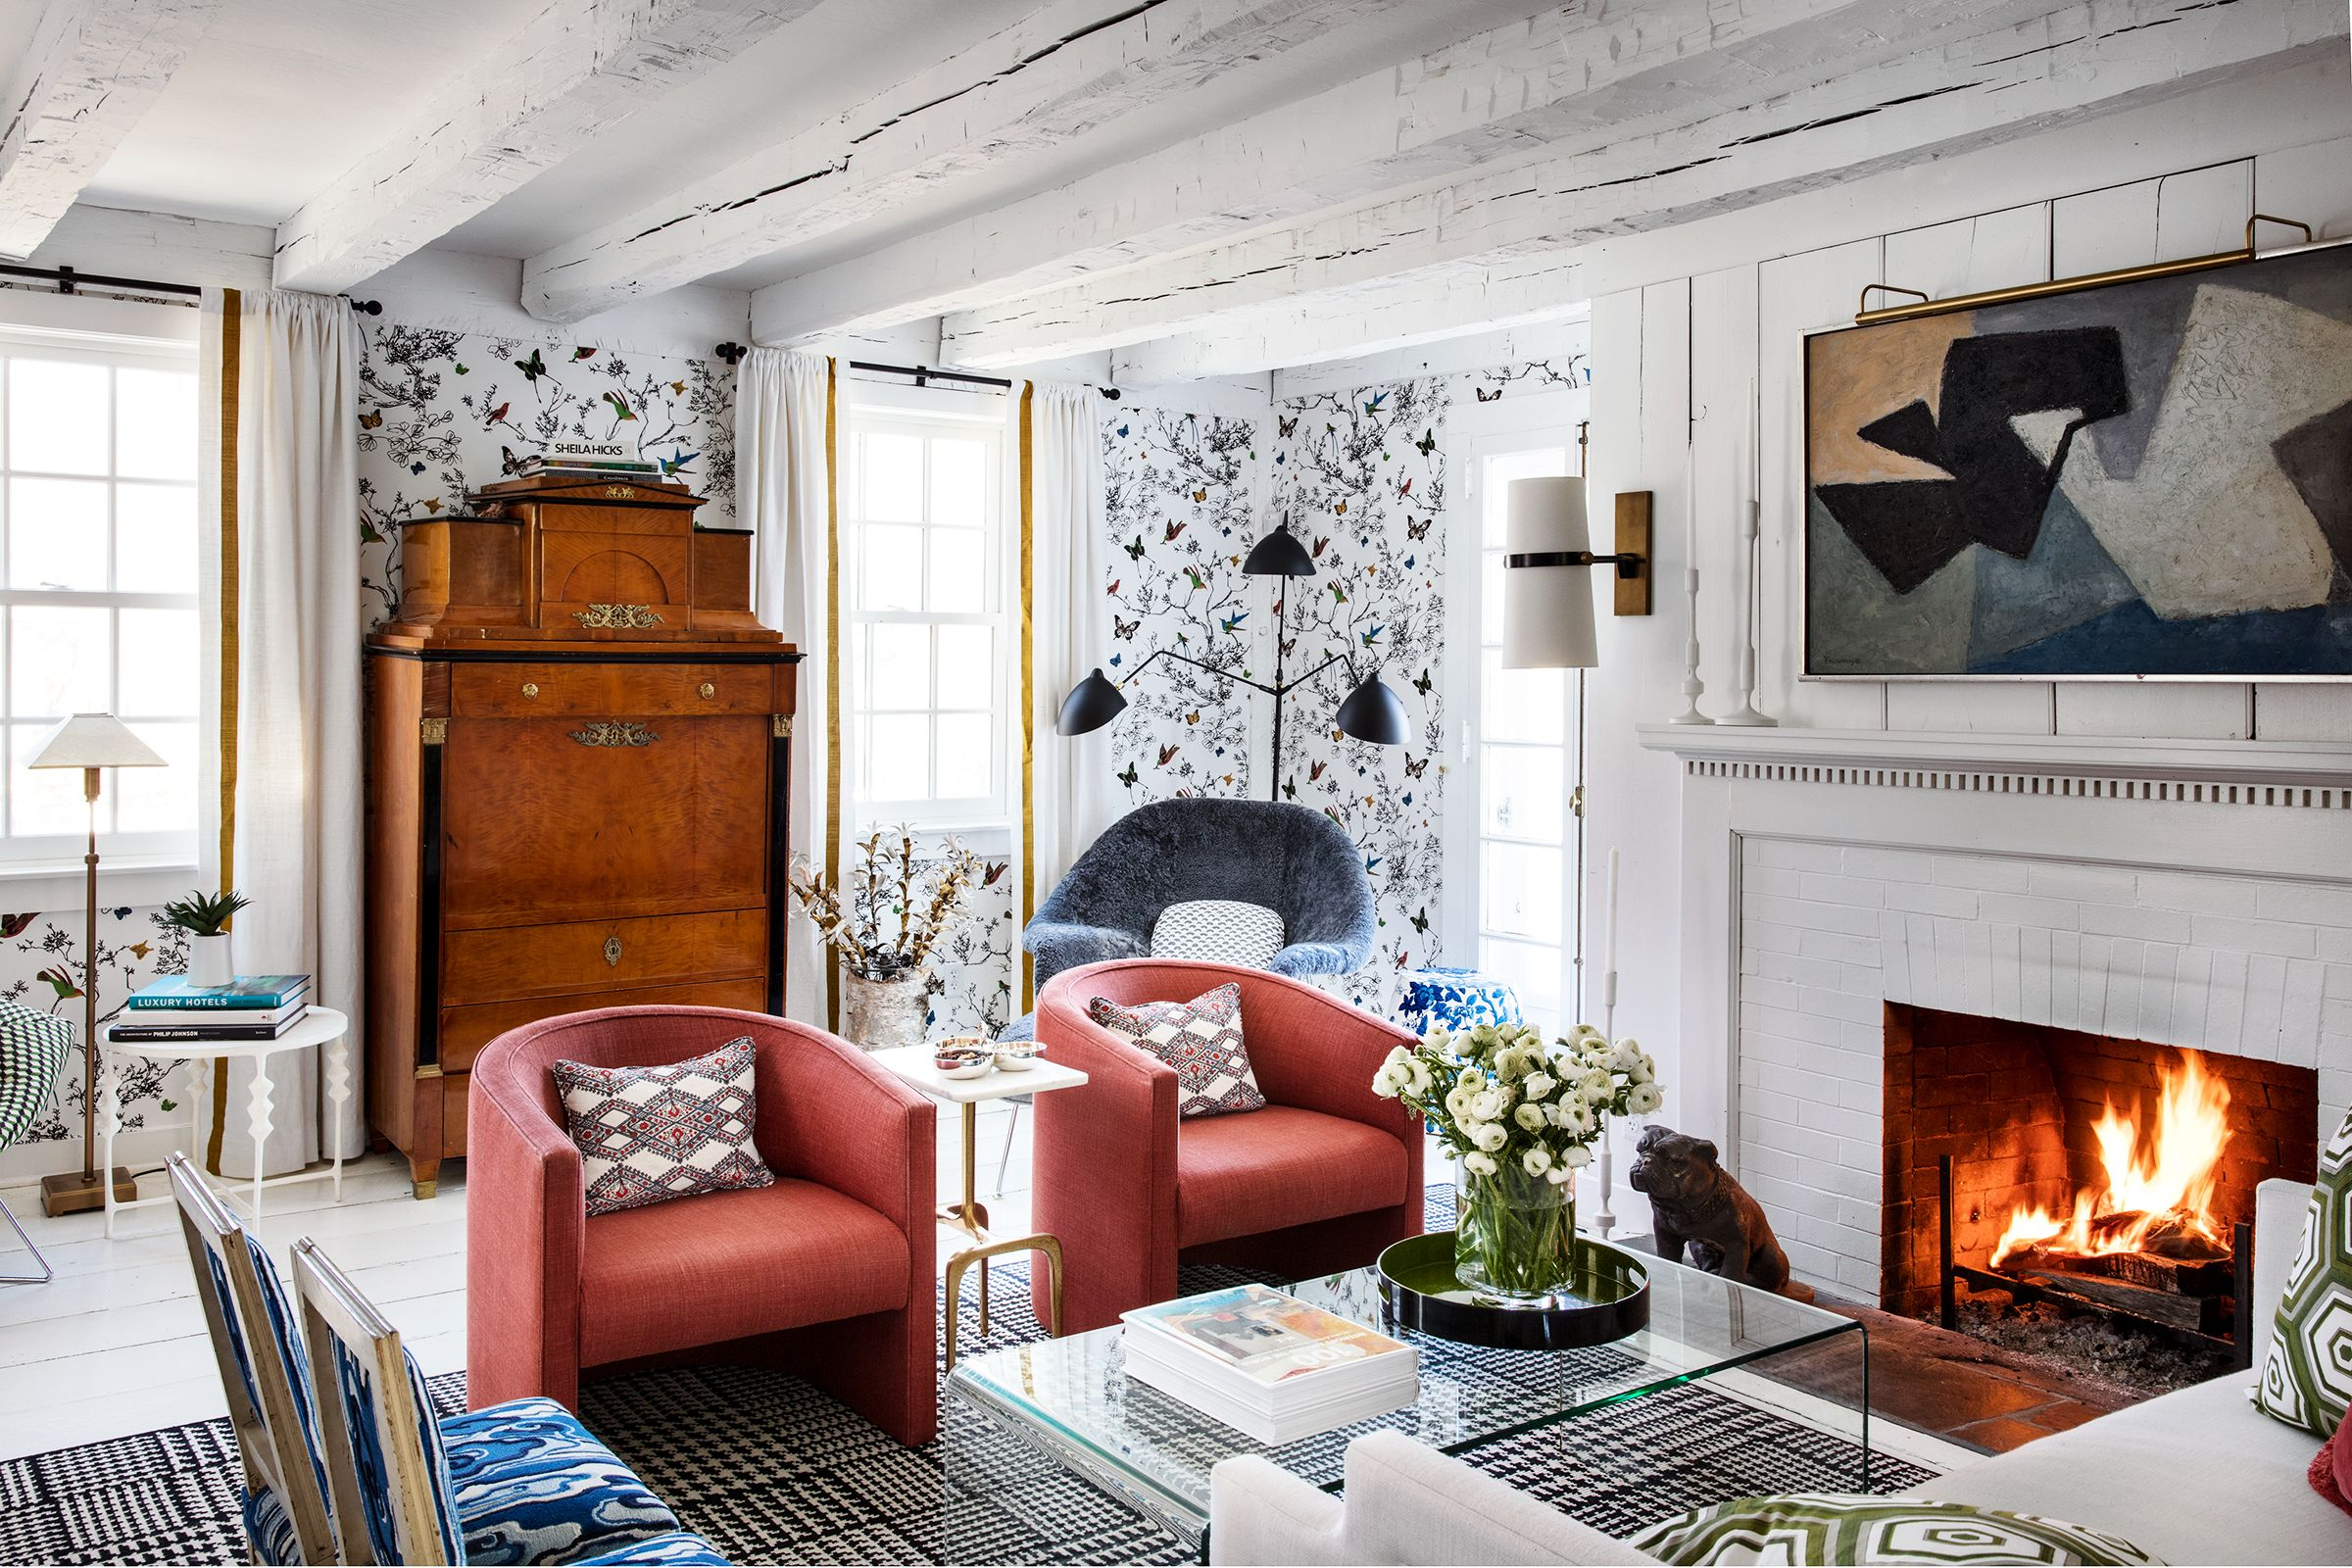 Captivating 19 Living Room Wallpaper Ideas That Stand The Test Of Time